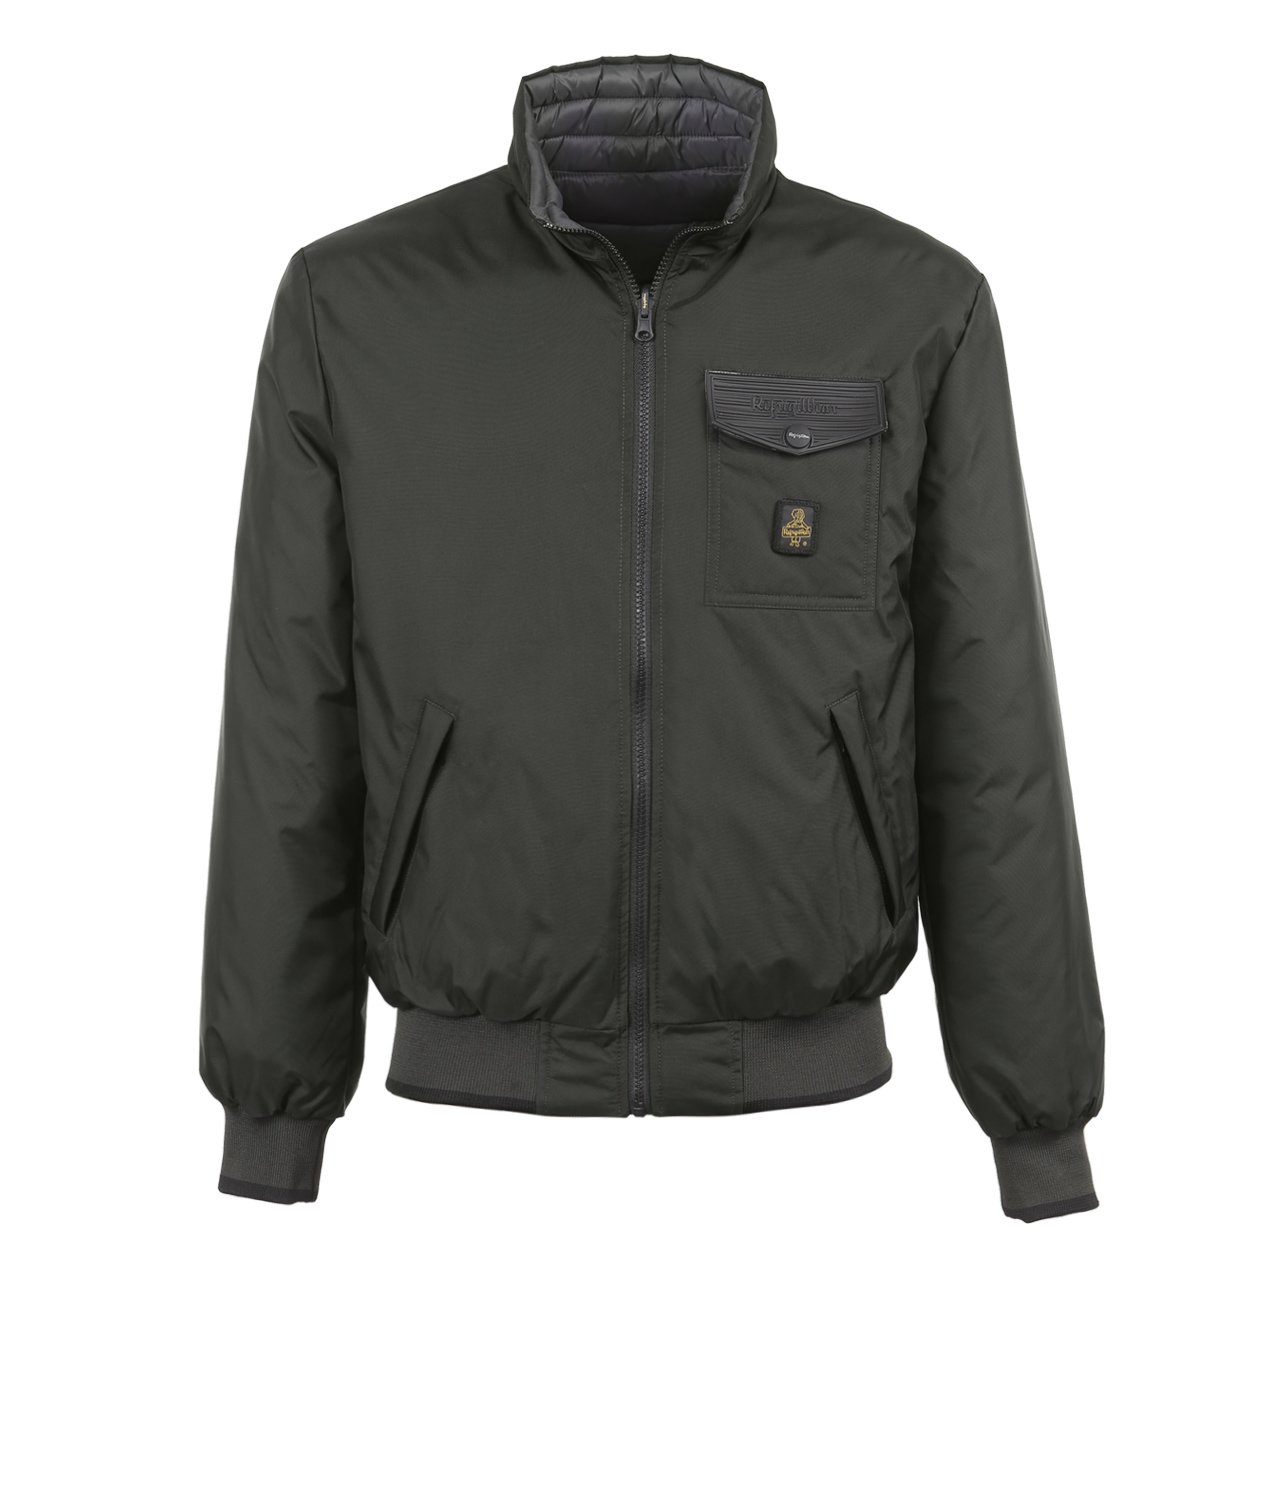 REVERSIBLE CAPTAIN JACKET